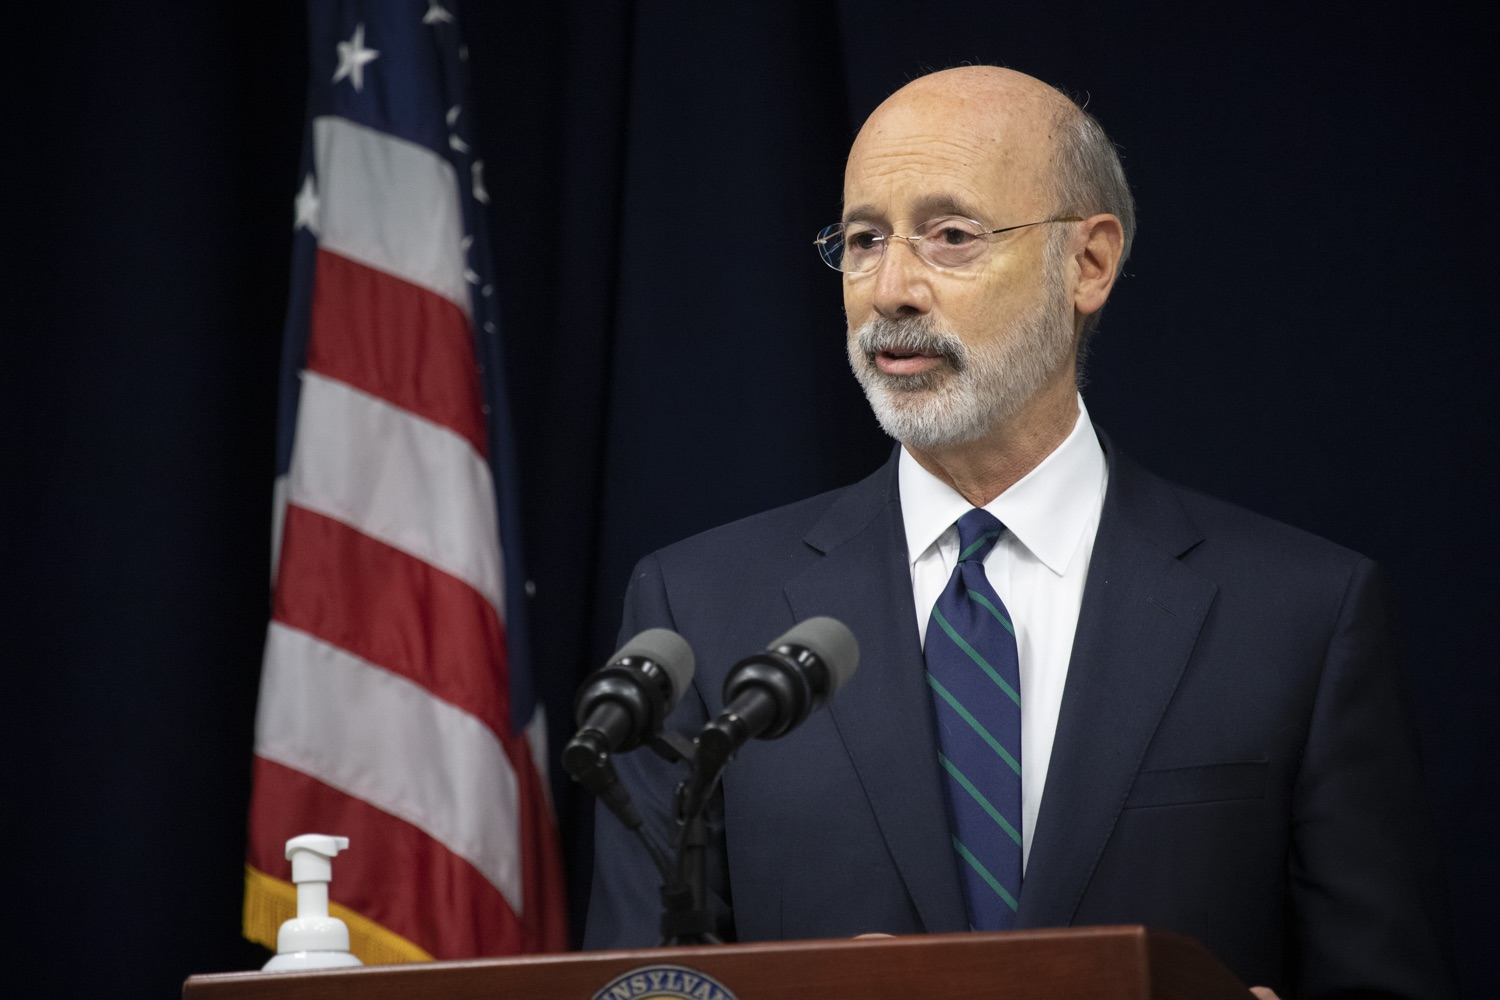 """<a href=""""https://filesource.wostreaming.net/commonwealthofpa/photo/18239_gov_recMarijuana_dz_014.jpg"""" target=""""_blank"""">⇣Download Photo<br></a>Pennsylvania Governor Tom Wolf speaking with the press. Governor Tom Wolf and Lt. Governor John Fetterman today called on the legislature to take up the legalization of adult-use cannabis to help with the states economic recovery amid COVID-19. Legalization will also create more outlets for important restorative justice programs in the commonwealth.  Harrisburg, PA  Sept. 3, 2020"""